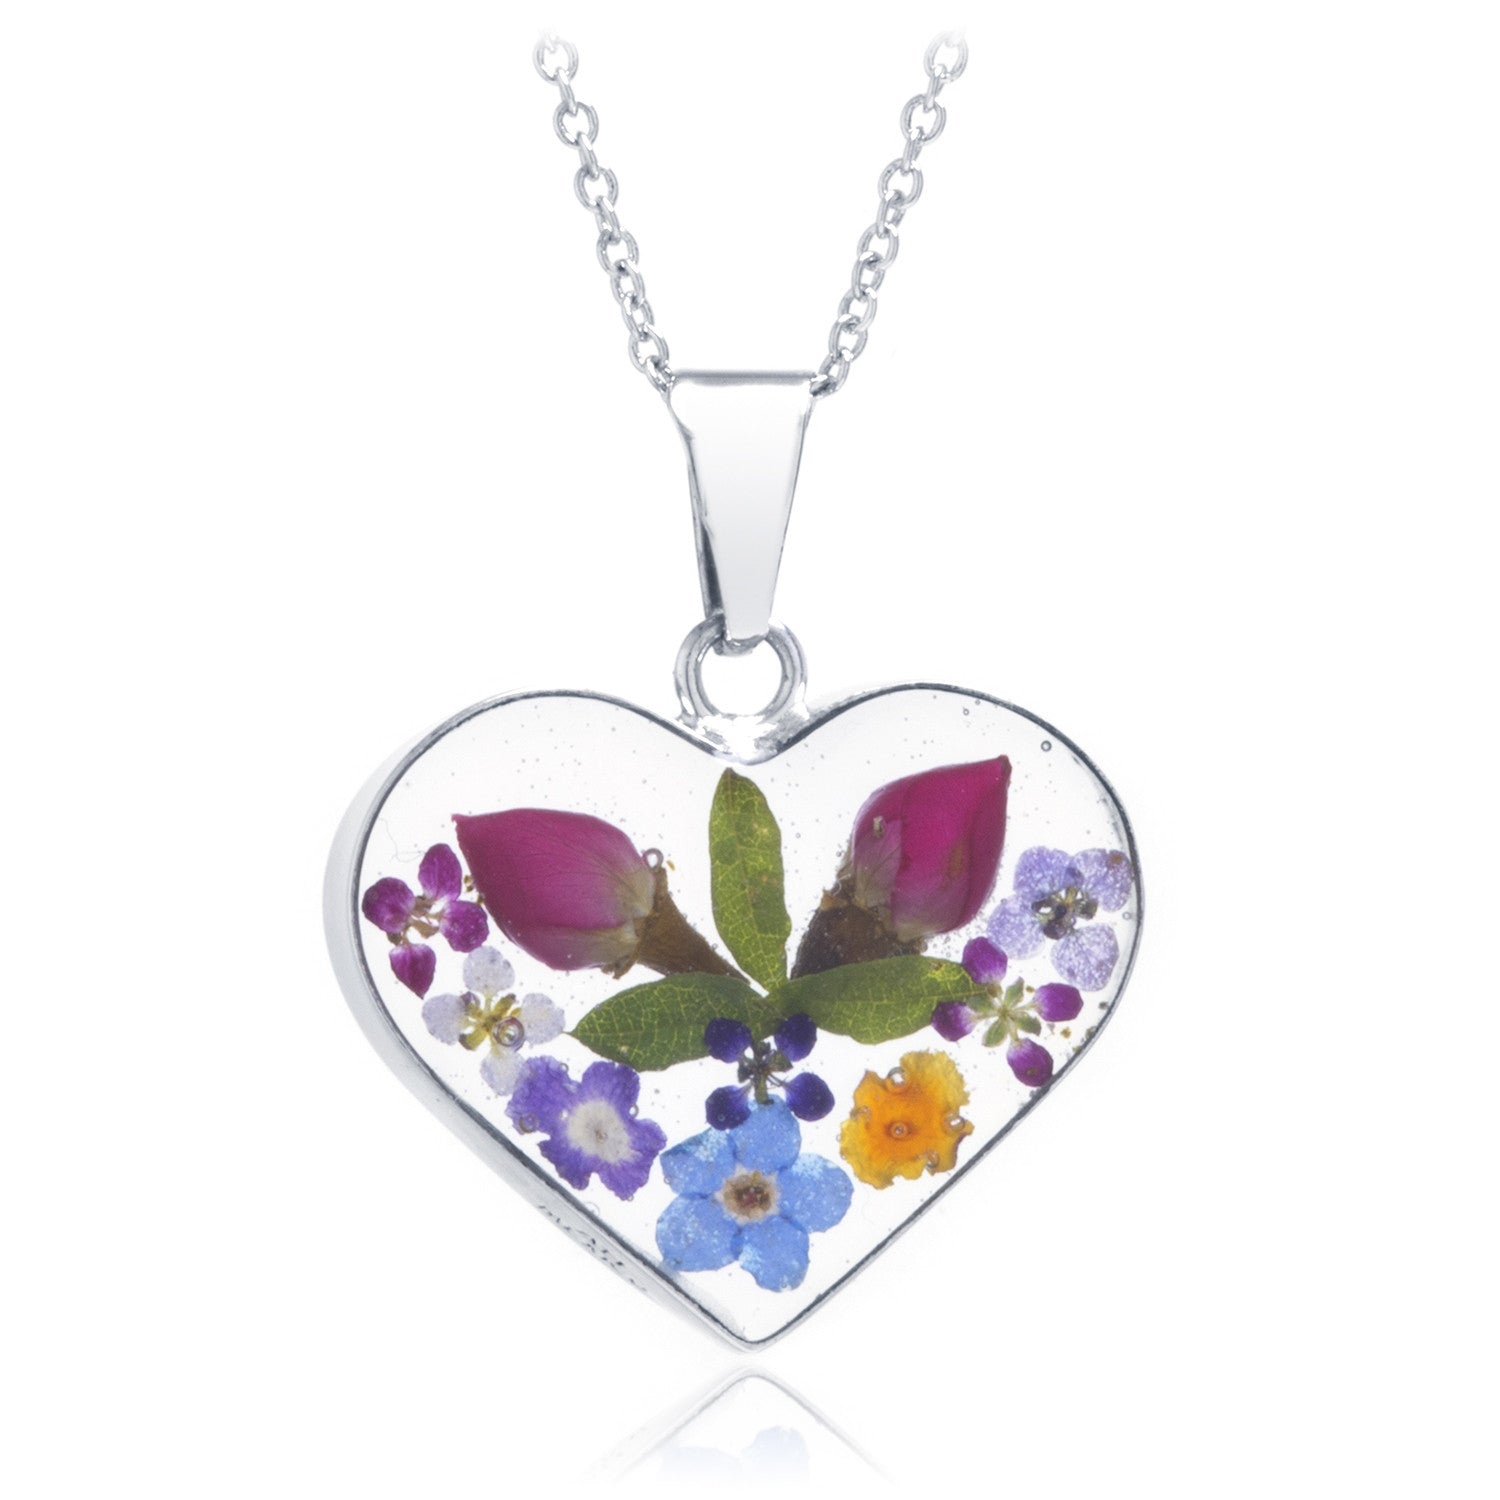 Silver plated rose multi dried flower heart necklace gift set silver plated rose multi dried flower heart necklace gift set mozeypictures Images